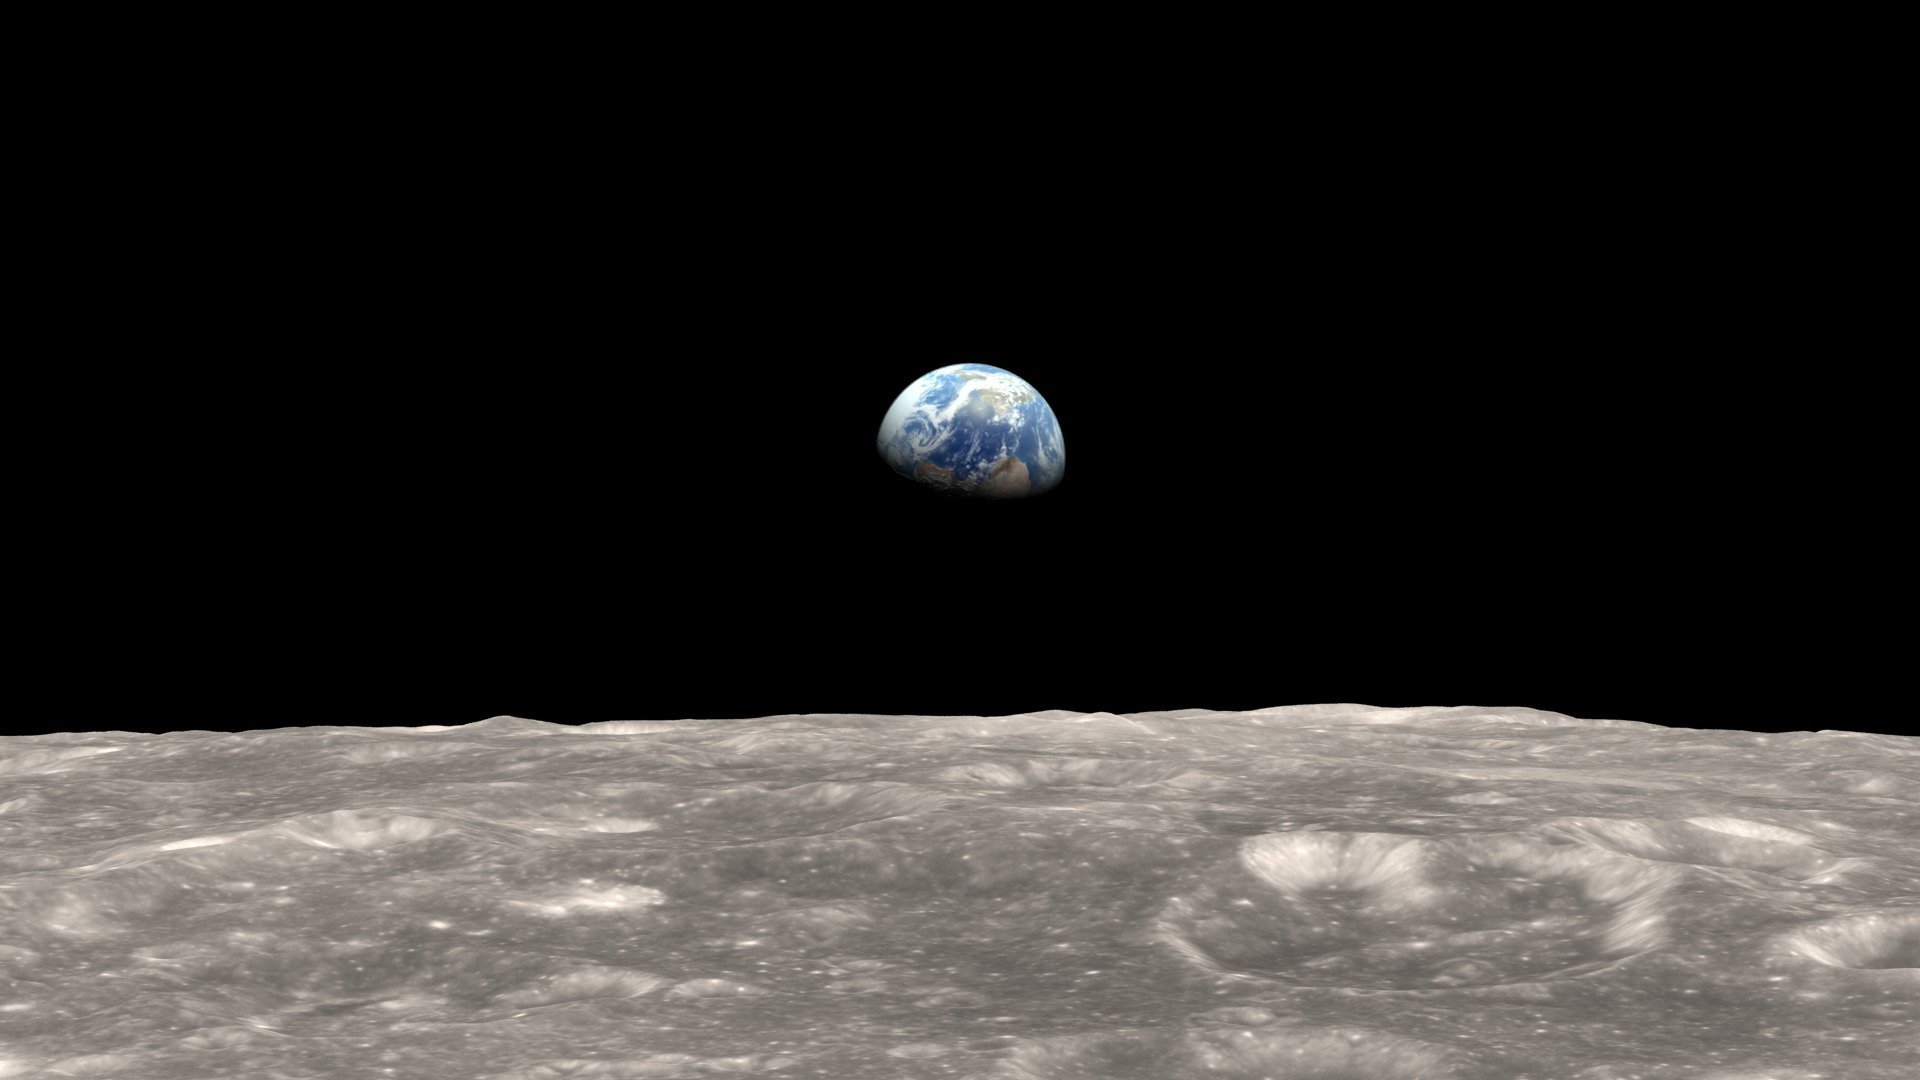 SVS: Earthrise in 4K